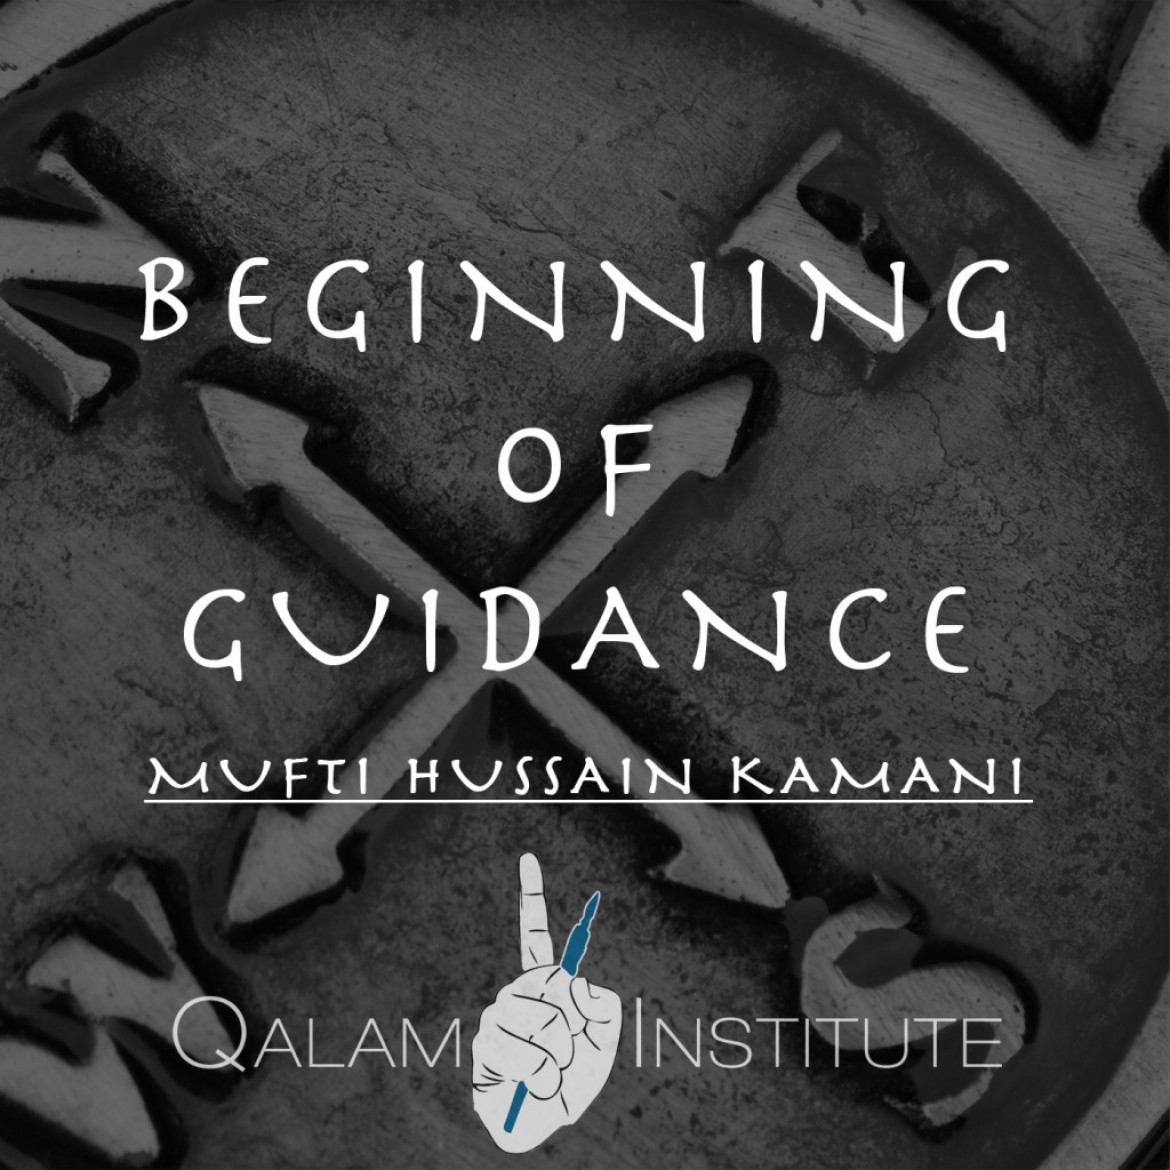 The Beginning of Guidance – The Evils of The Tongue: Part 1